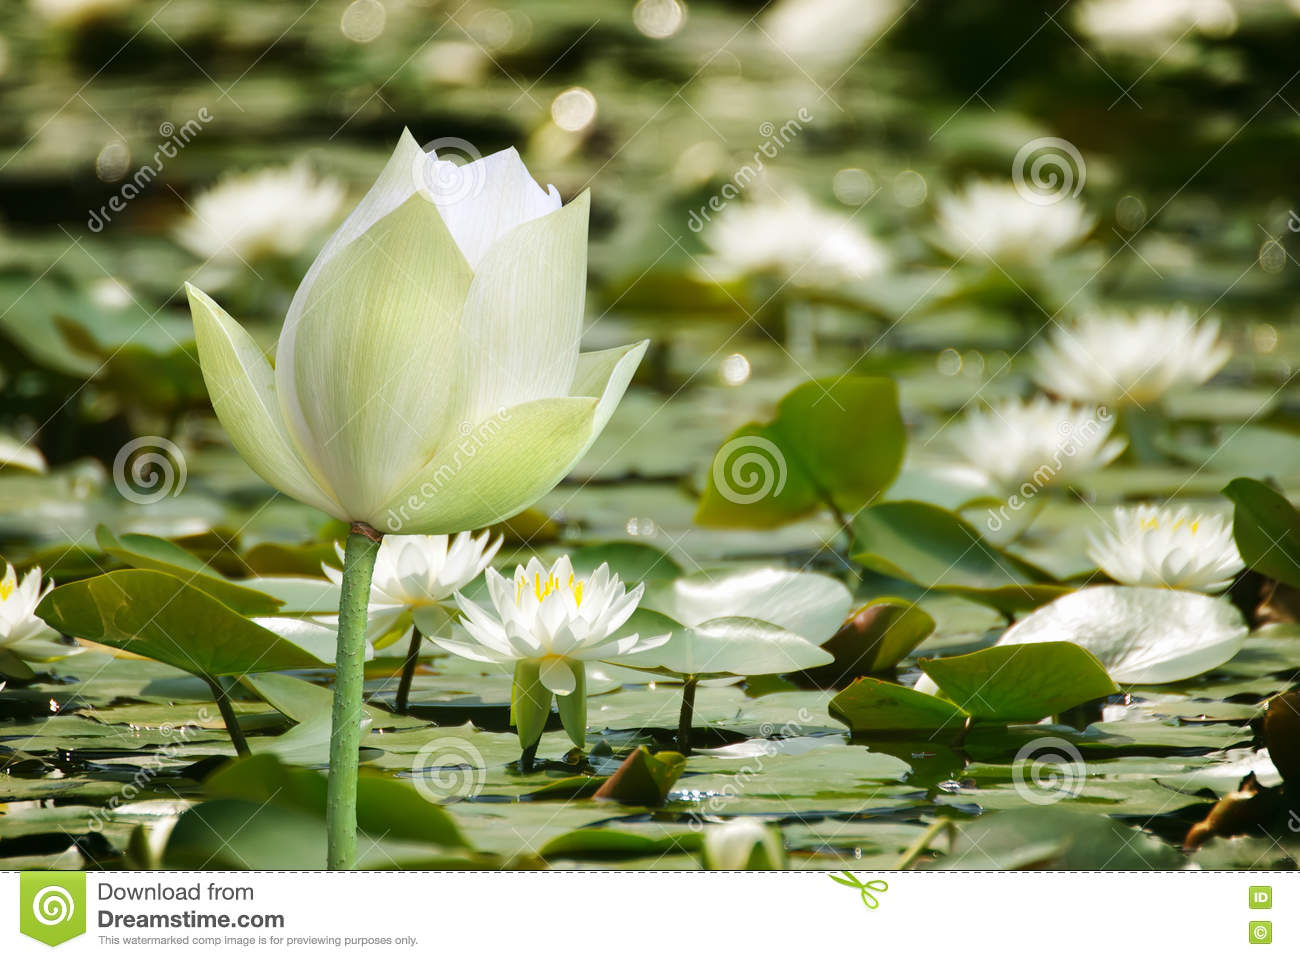 White Lotus Flower On Water · Free Stock Photo